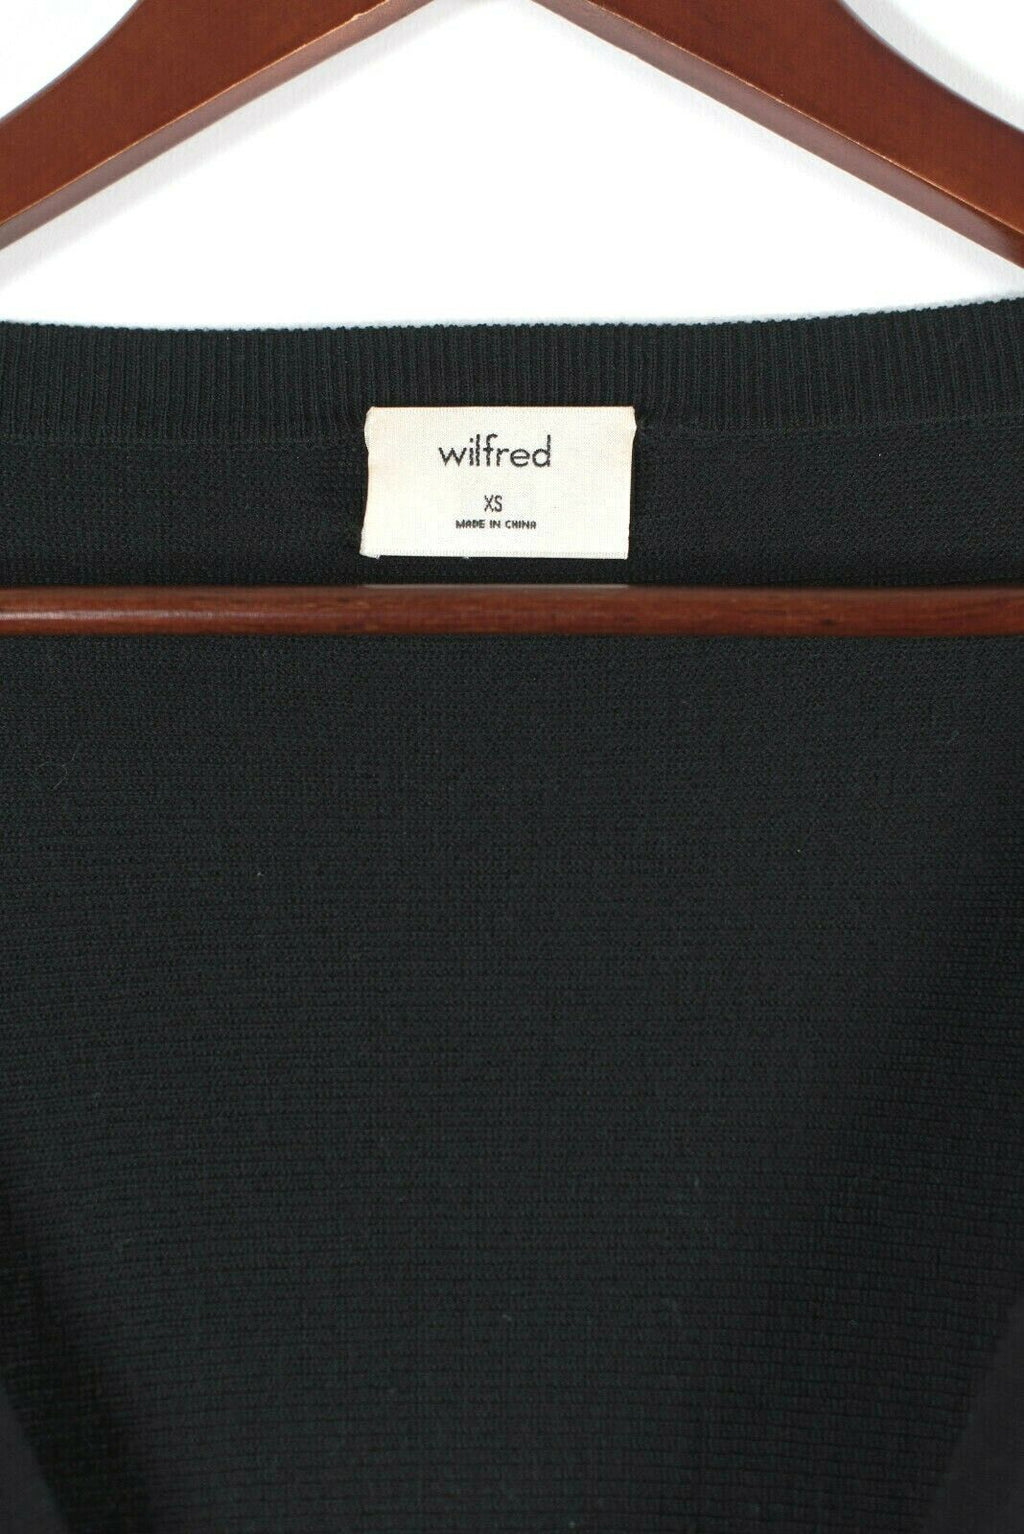 Aritzia Wilfred Womens XS Black Emmy Sweater Merino Wool Sleeve Cuff Tie Cropped